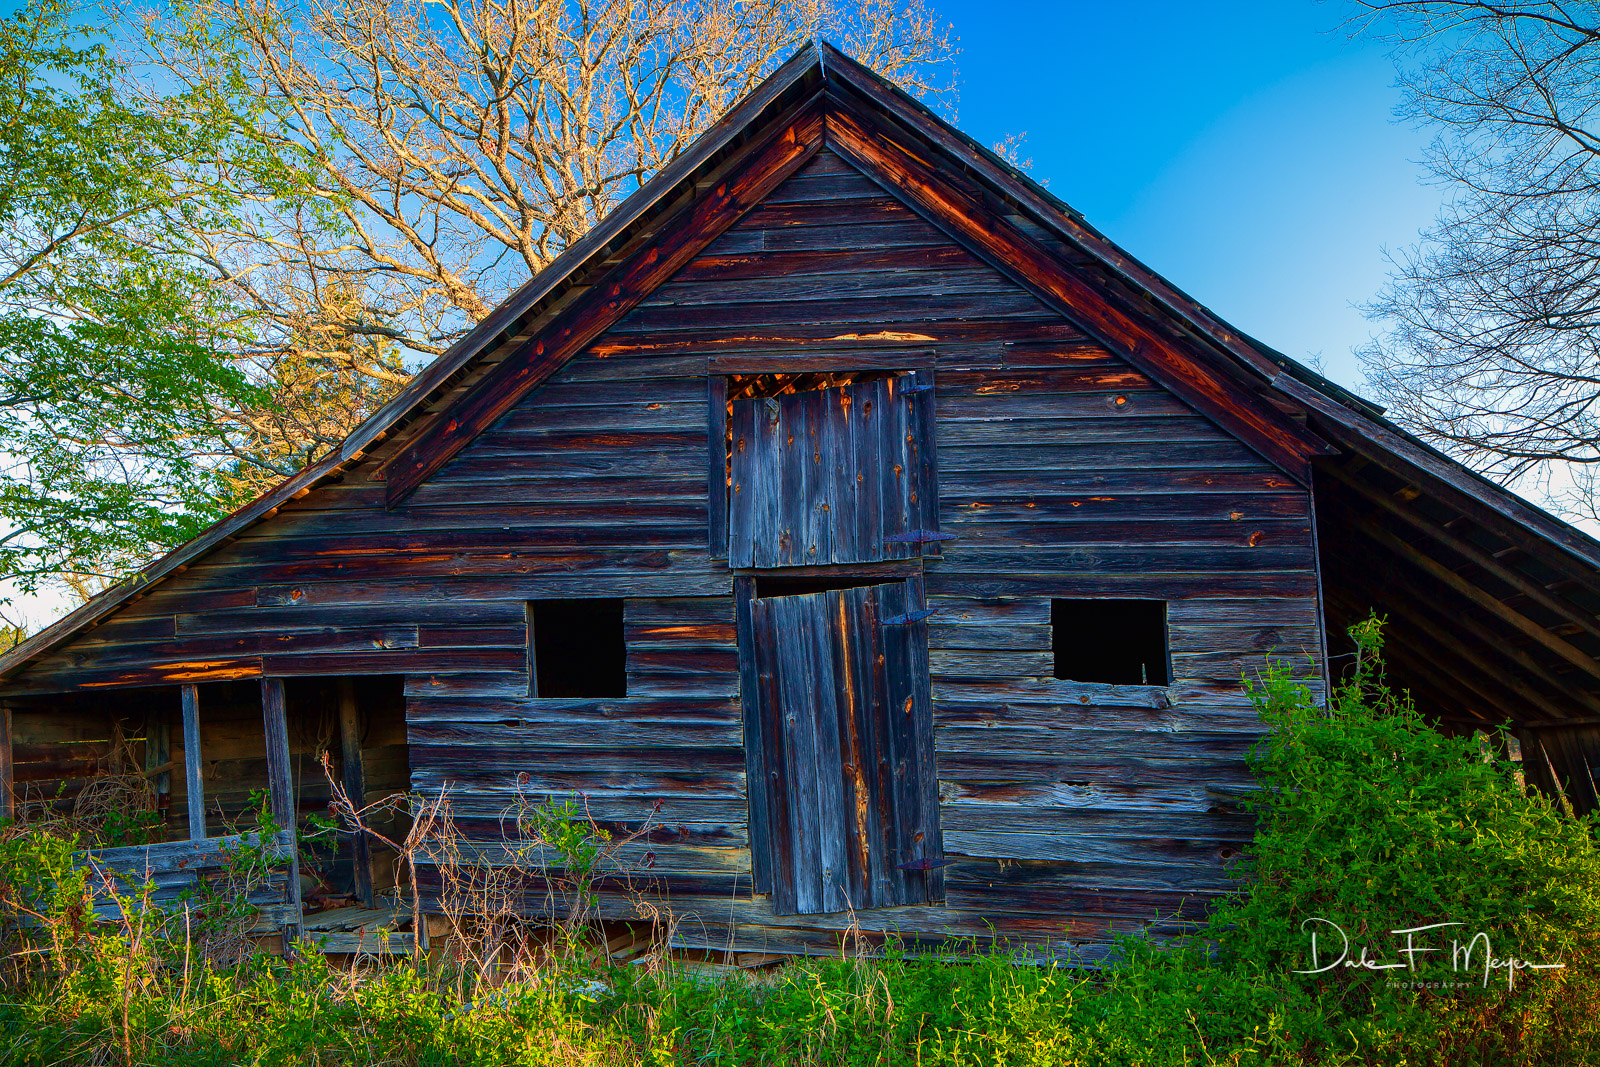 Old barn,rural Arkansas,spring 2011,time gone by gallerie, photo